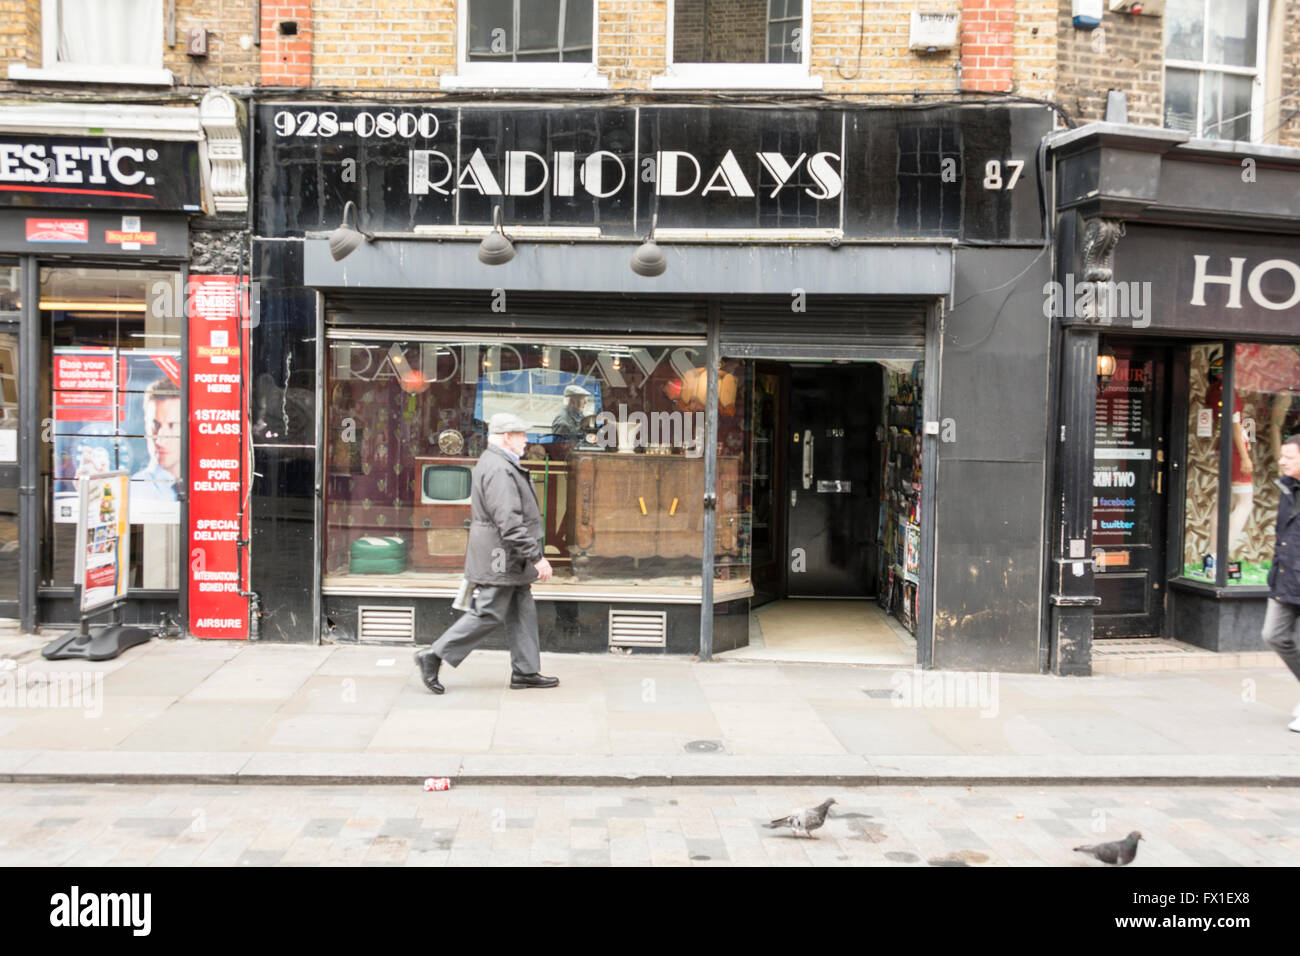 Radio Days on Lower Marsh, Waterloo, London, SE1, United Kingdom - Stock Image